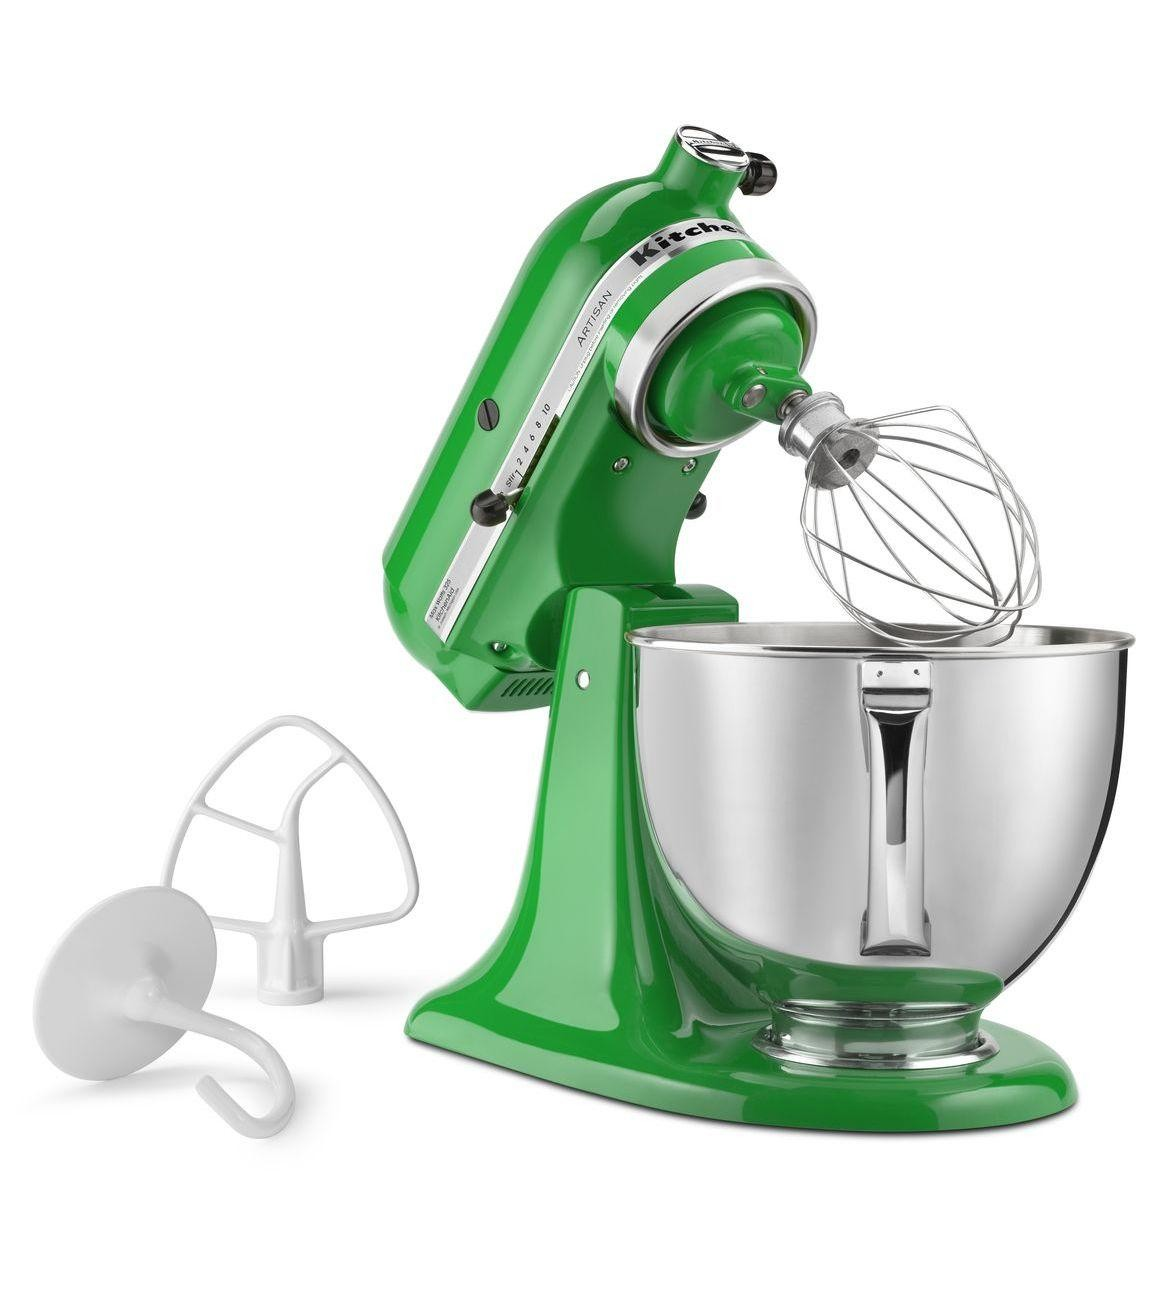 kitchenaid-artisan-5KSM150-11.jpg